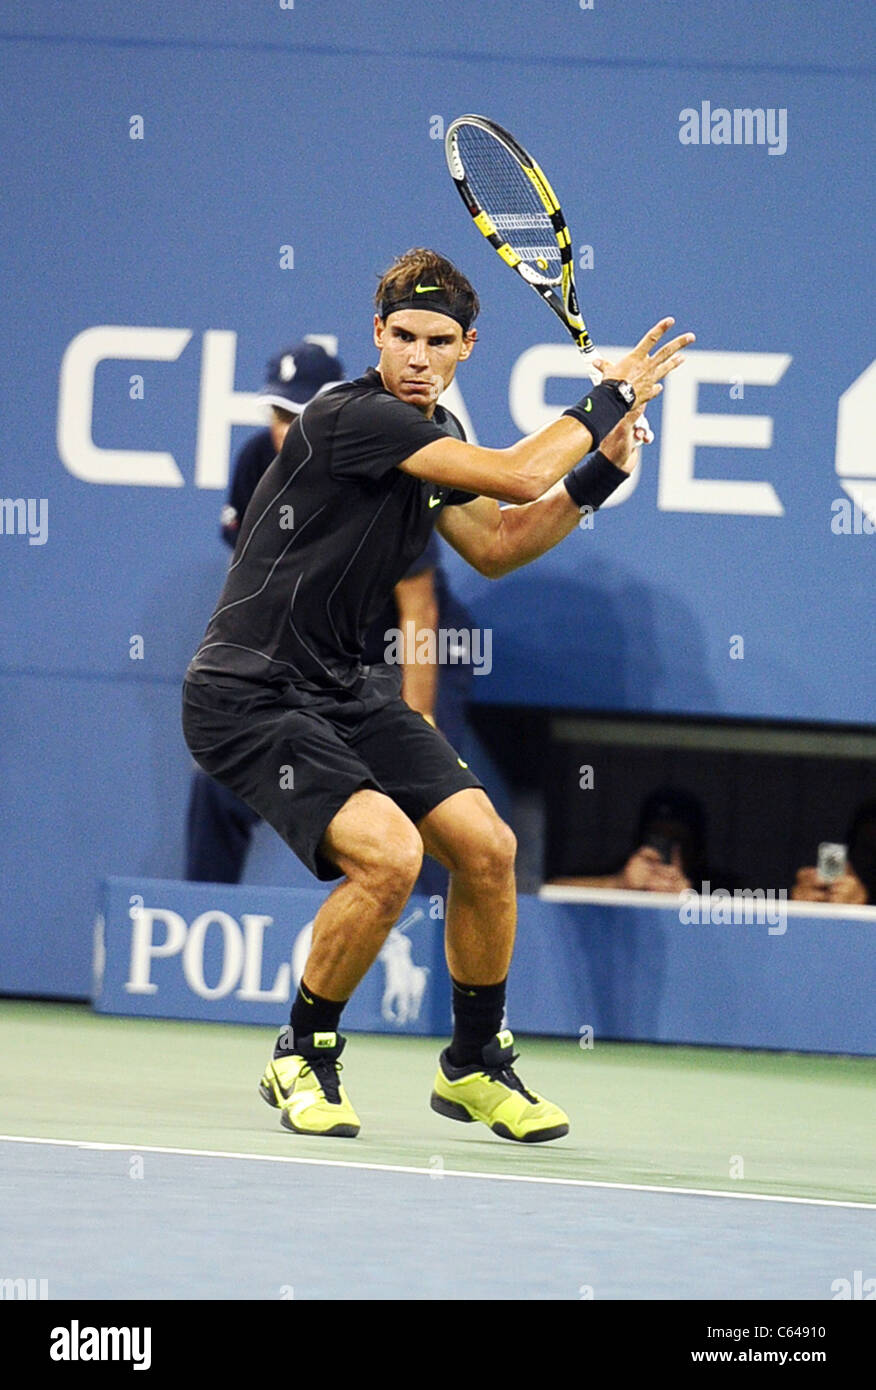 Rafael Nadal At The Us Open High Resolution Stock Photography And Images Alamy